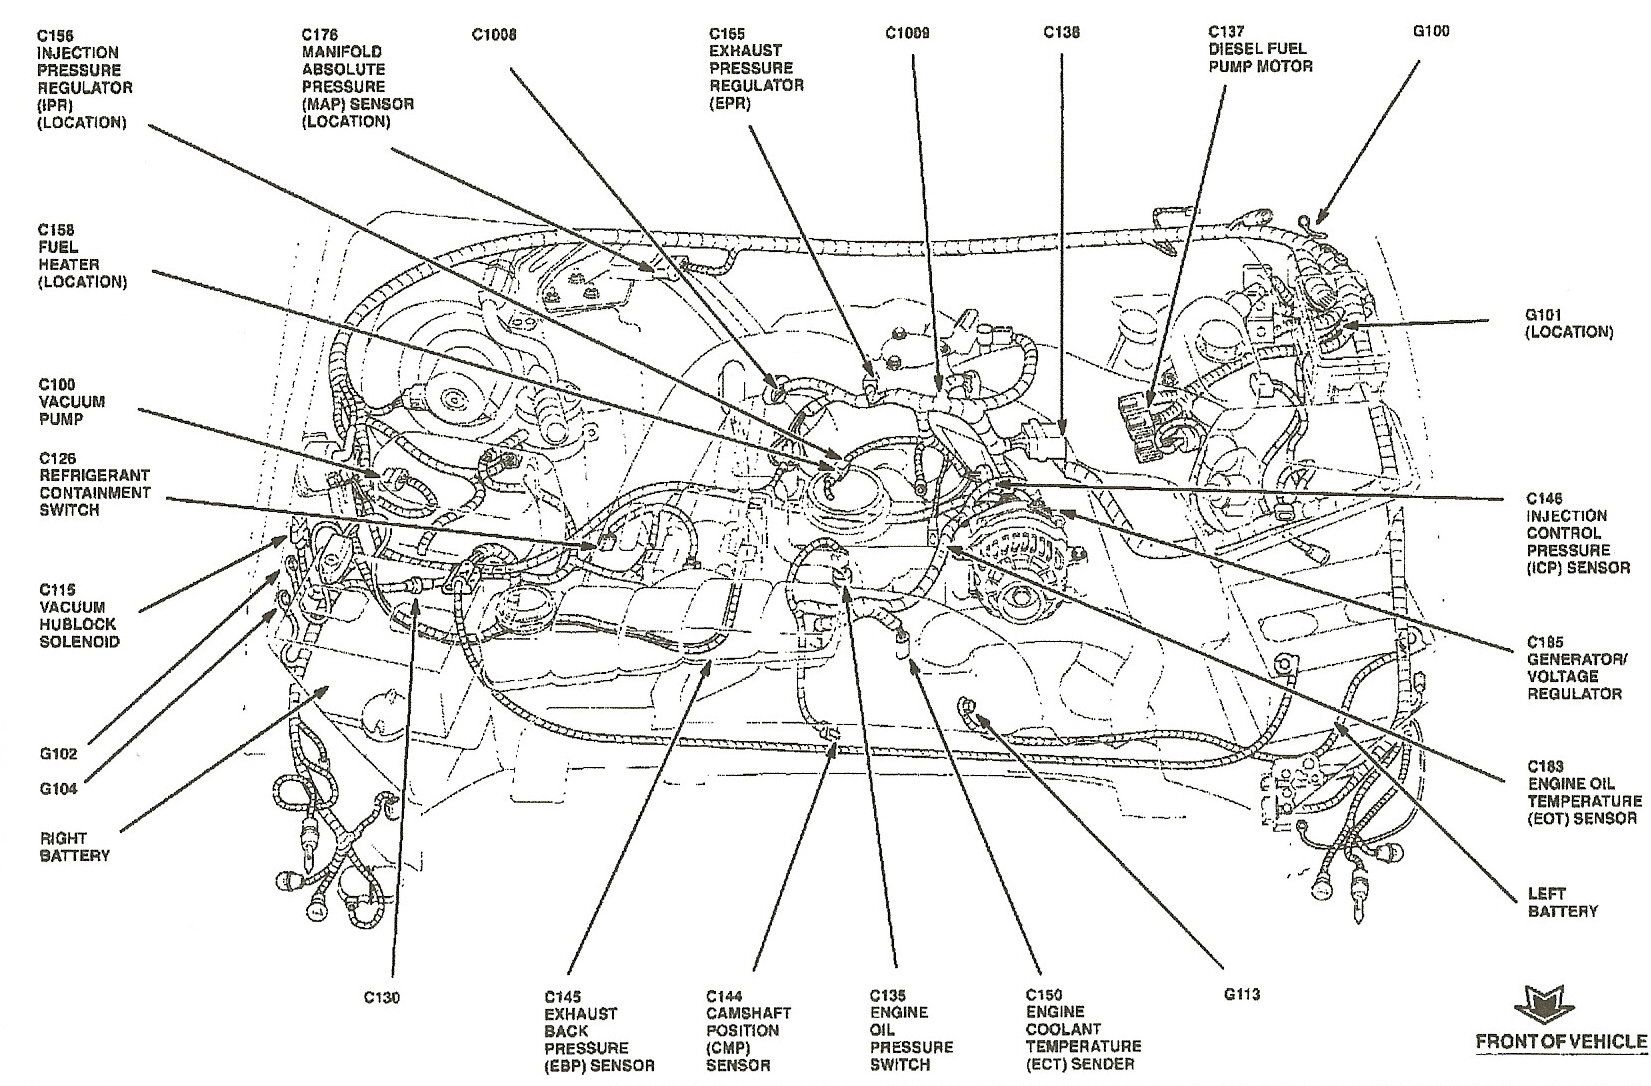 1982 buick regal fuse box diagram  buick  auto fuse box